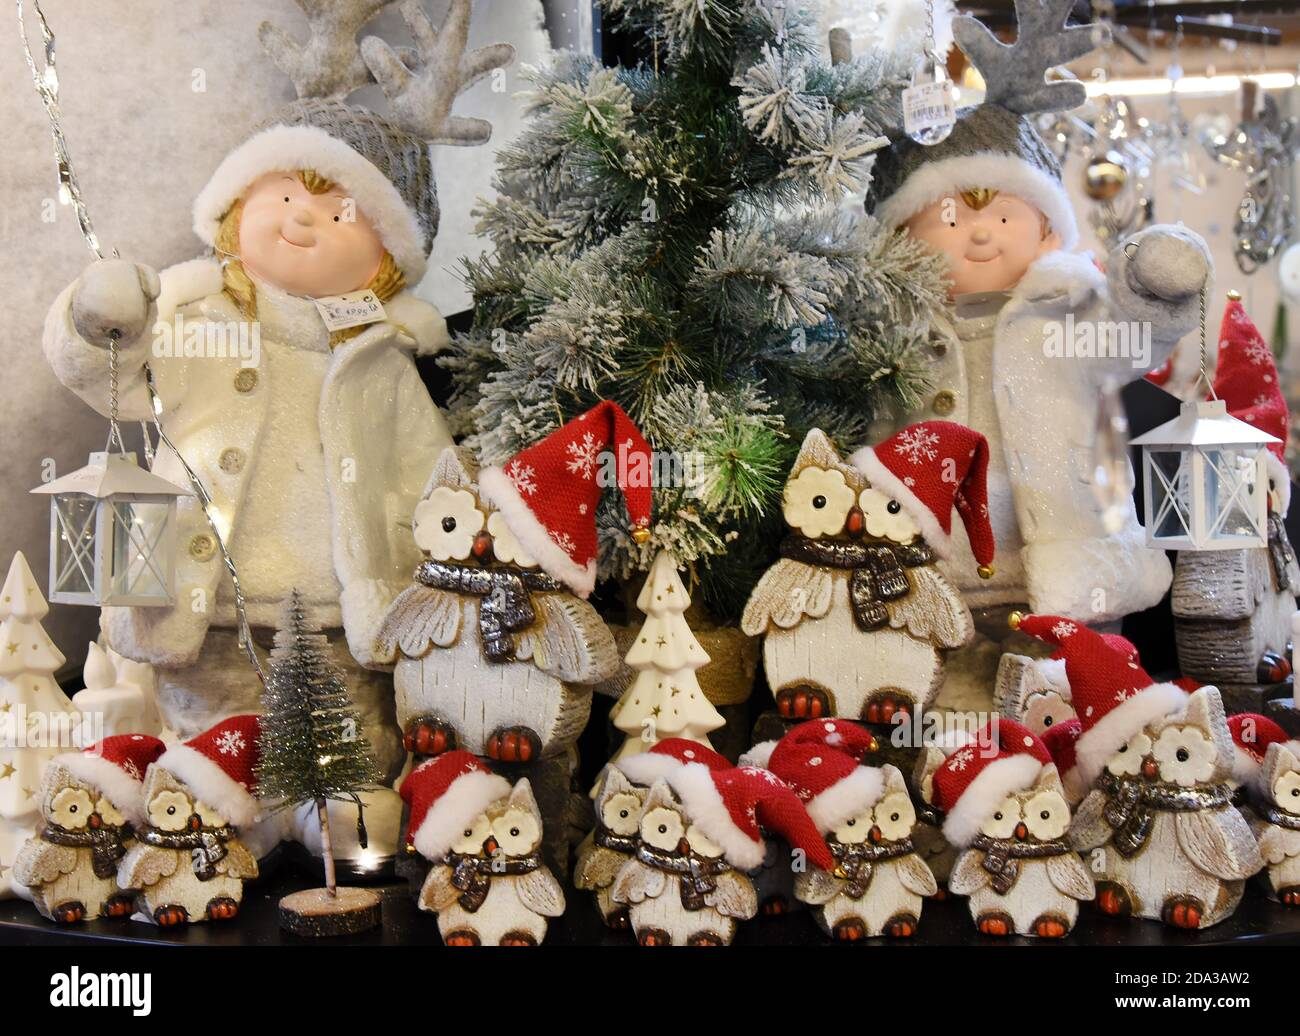 """Spickendorf, Germany. 03rd Nov, 2020. In the """"Christmas Wonderland"""" of the ceramic barn in Spickendorf near Halle, Christmassy decorated ceramic figures stand on a table. Since July, several thousand Christmas decoration articles have been on offer on two floors of around 600 square metres of exhibition space, in addition to floristic decorations. The festively decorated showrooms are also intended to offer visitors from all over Germany a small replacement for the cancelled Christmas markets. Credit: Waltraud Grubitzsch/dpa-Zentralbild/ZB/dpa/Alamy Live News Stock Photo"""